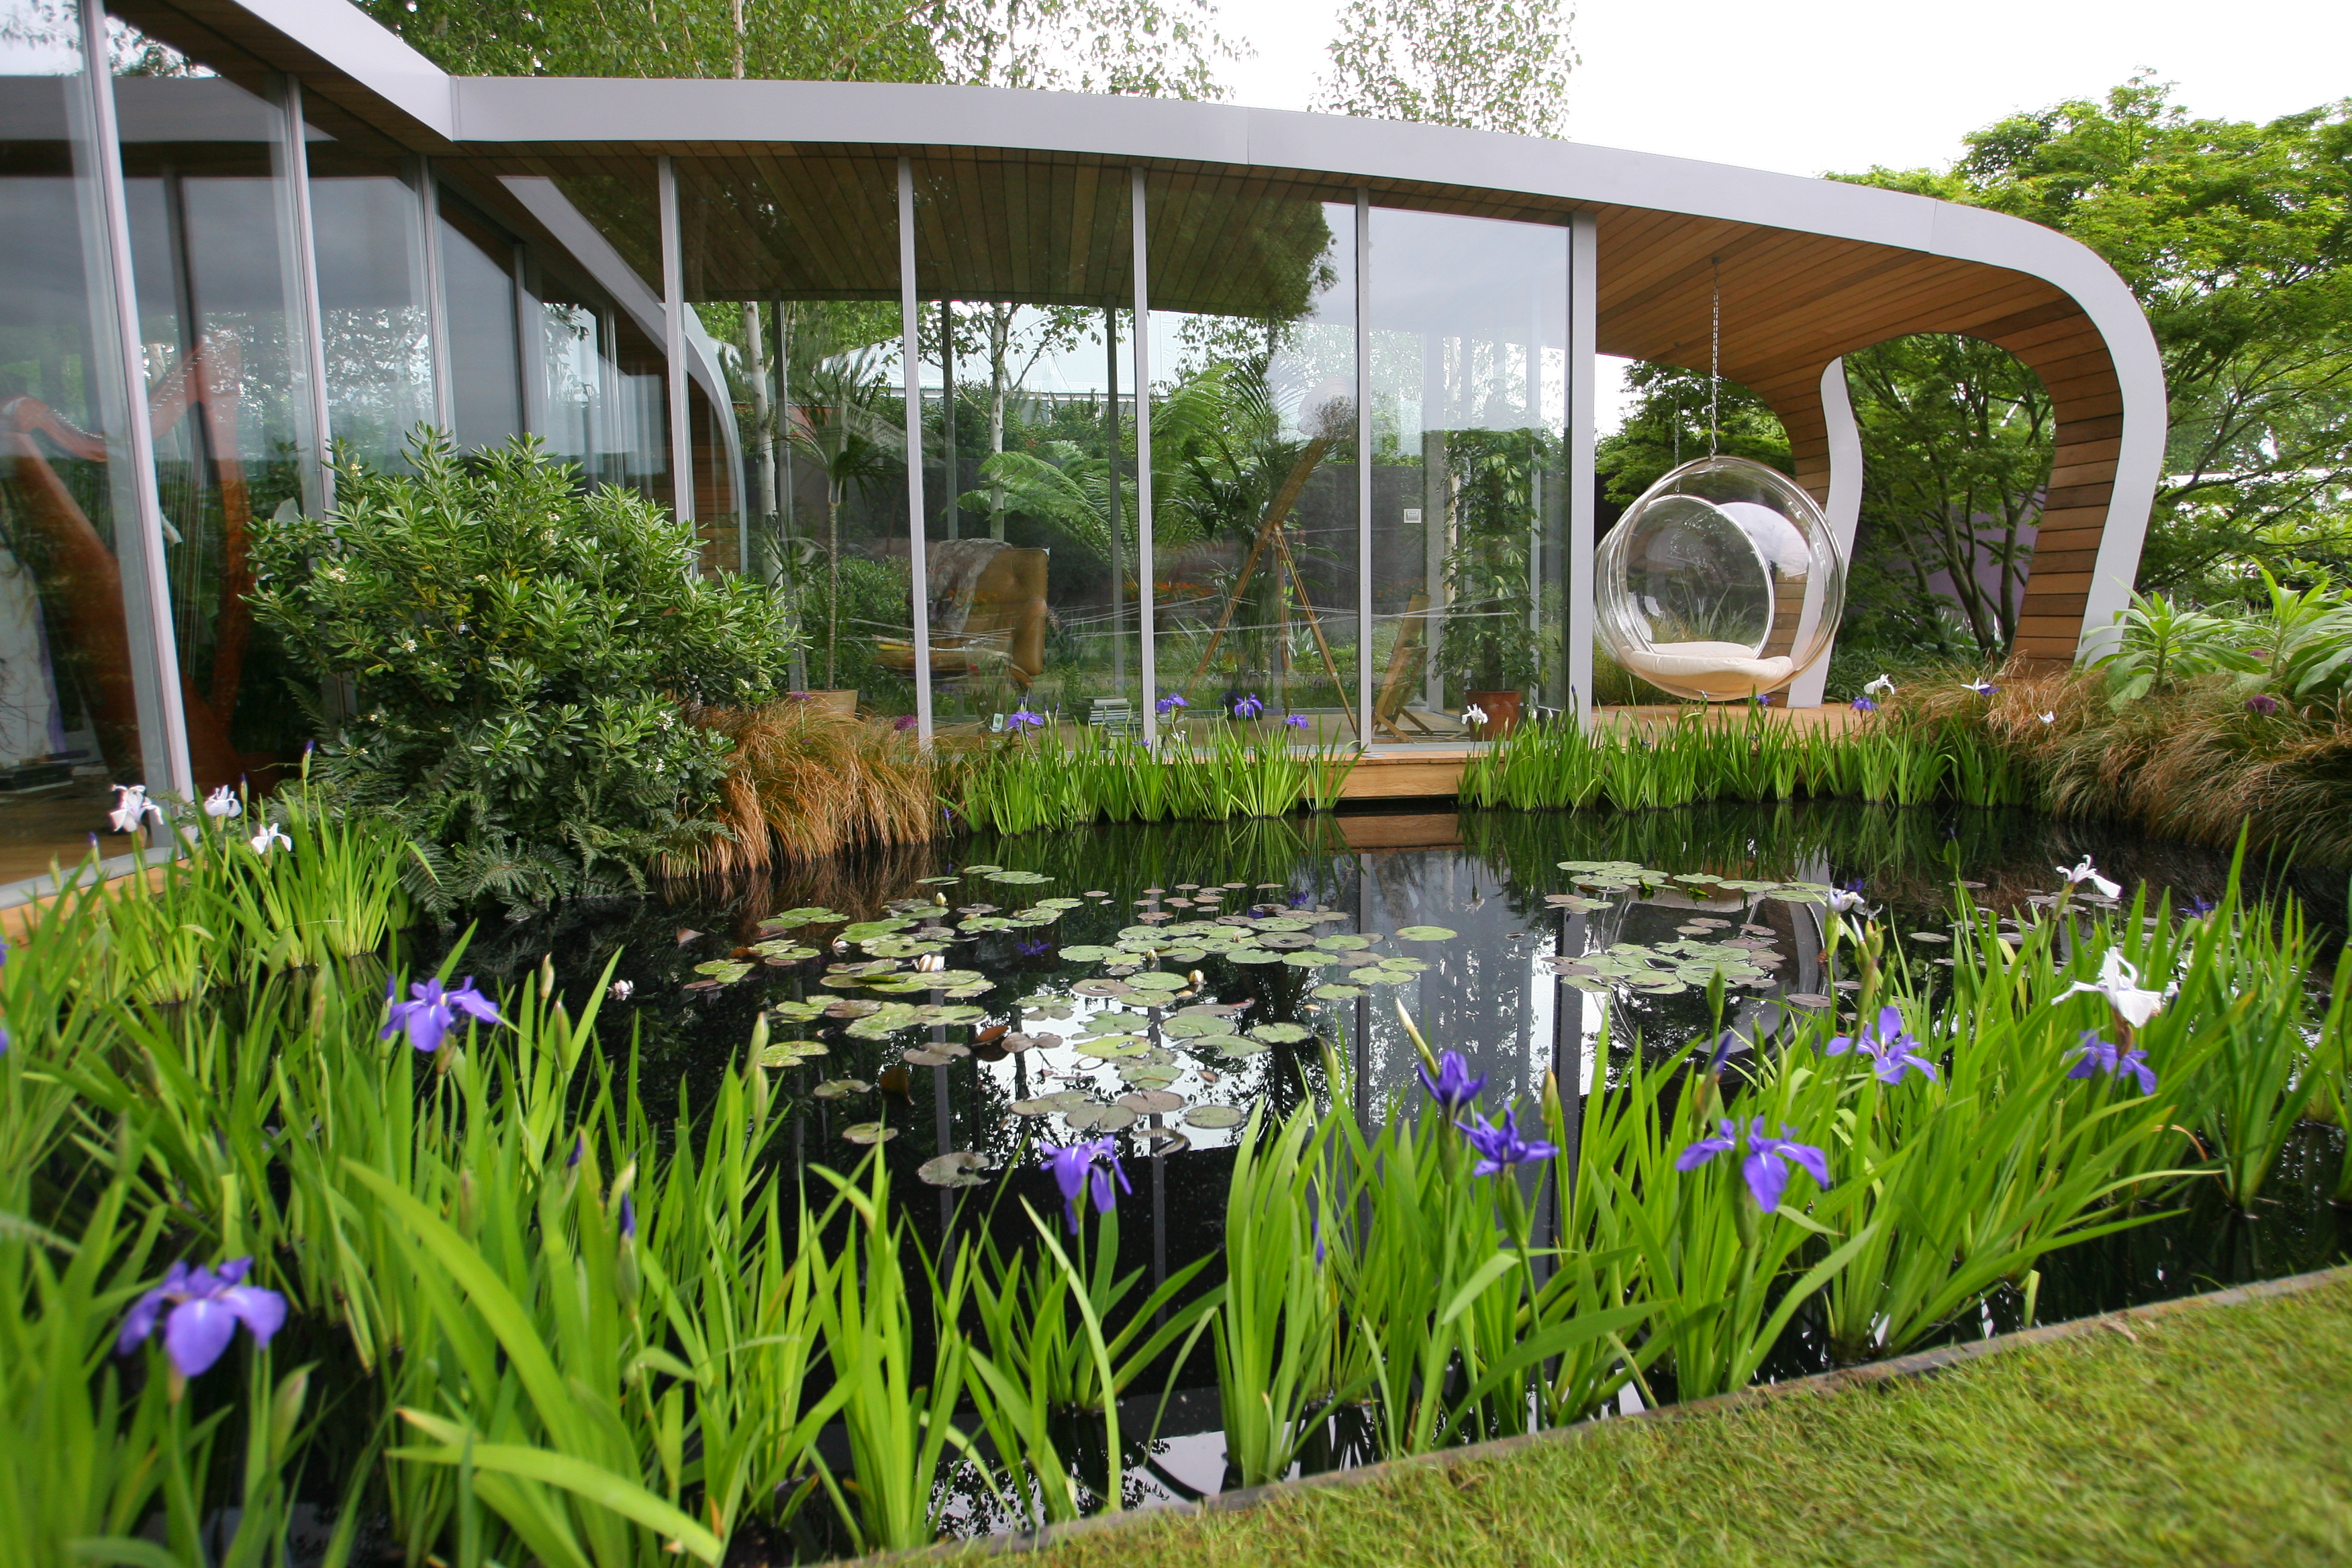 Country Life Today: Why the winners at next year's Chelsea Flower Show will have to be greener than ever